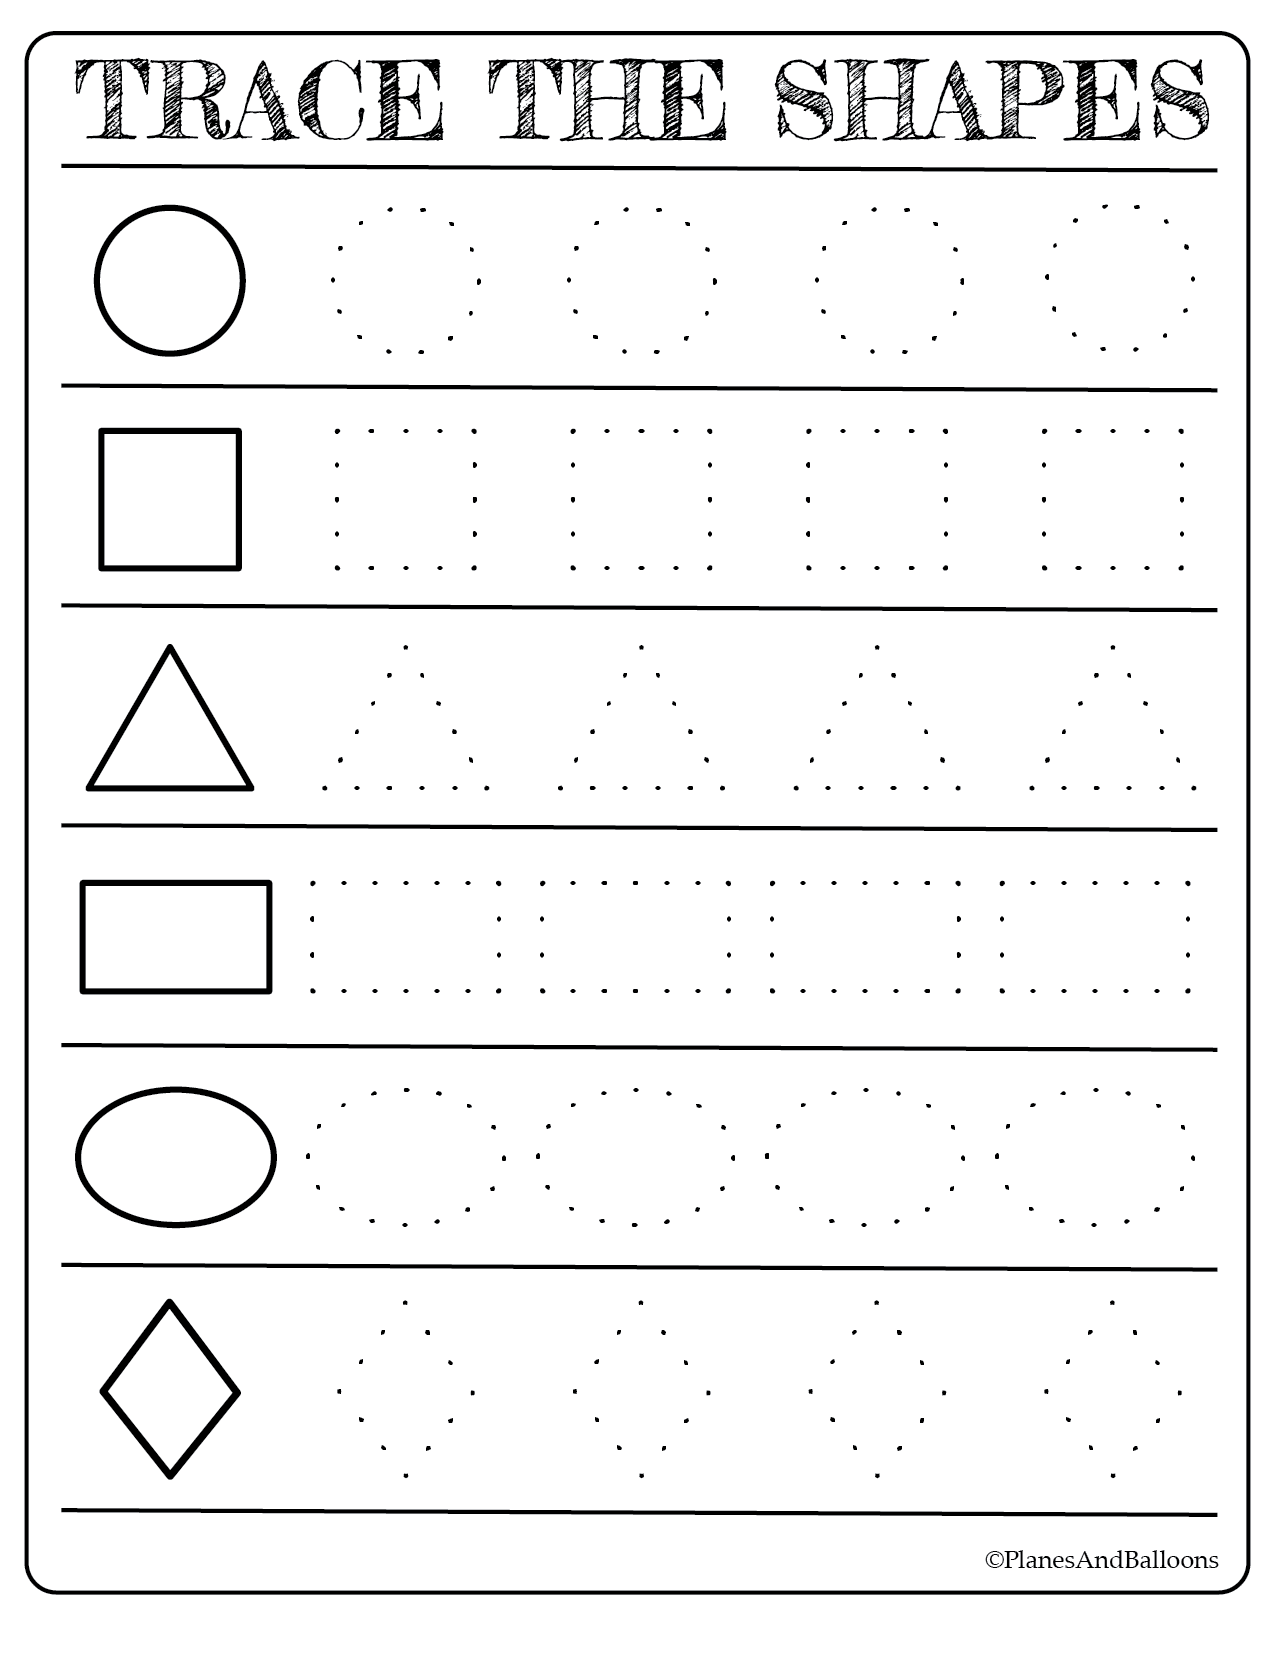 Free Printable Shapes Worksheets For Toddlers And   Free preschool  worksheets [ 1663 x 1275 Pixel ]